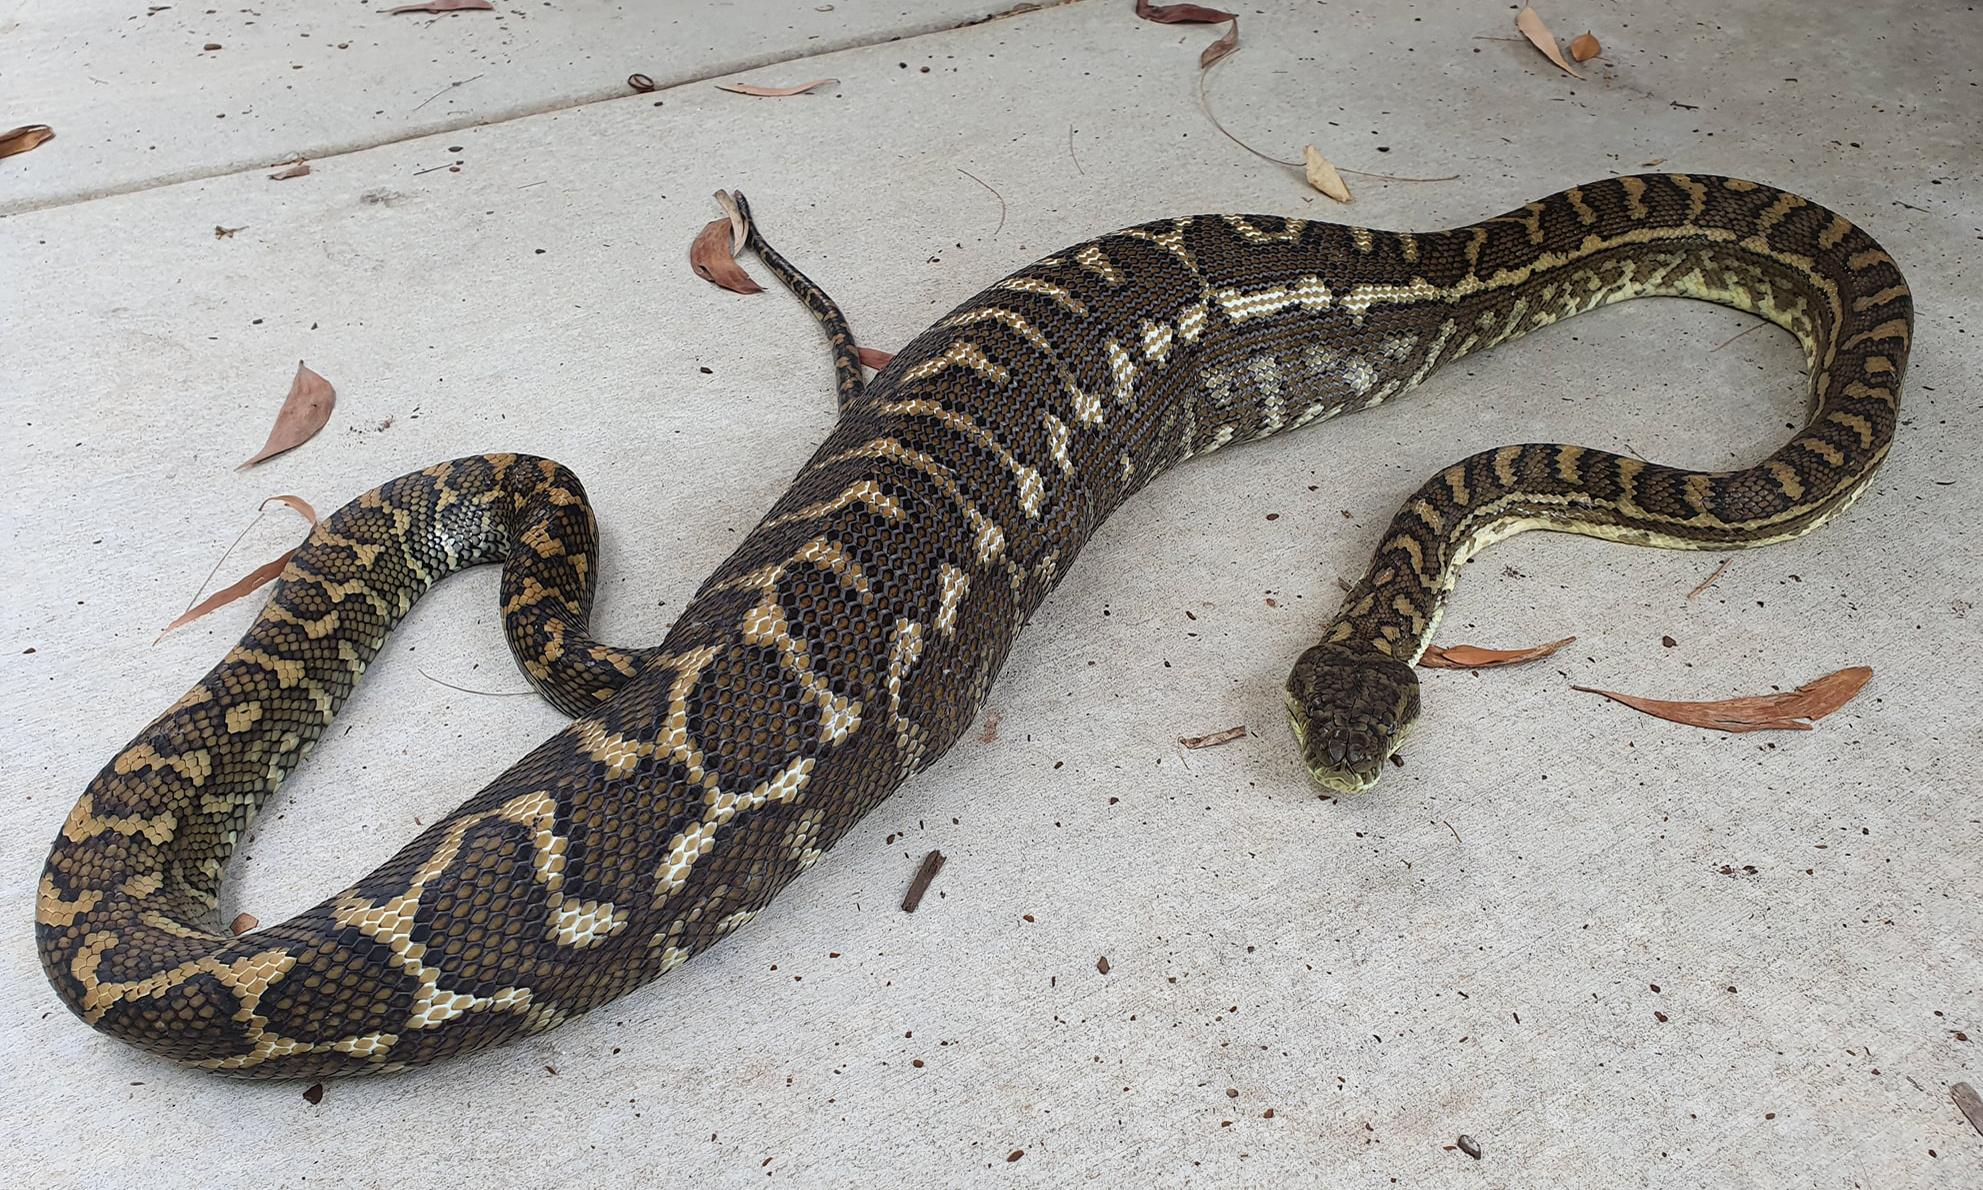 Python swallows family's pet cat whole in Queensland